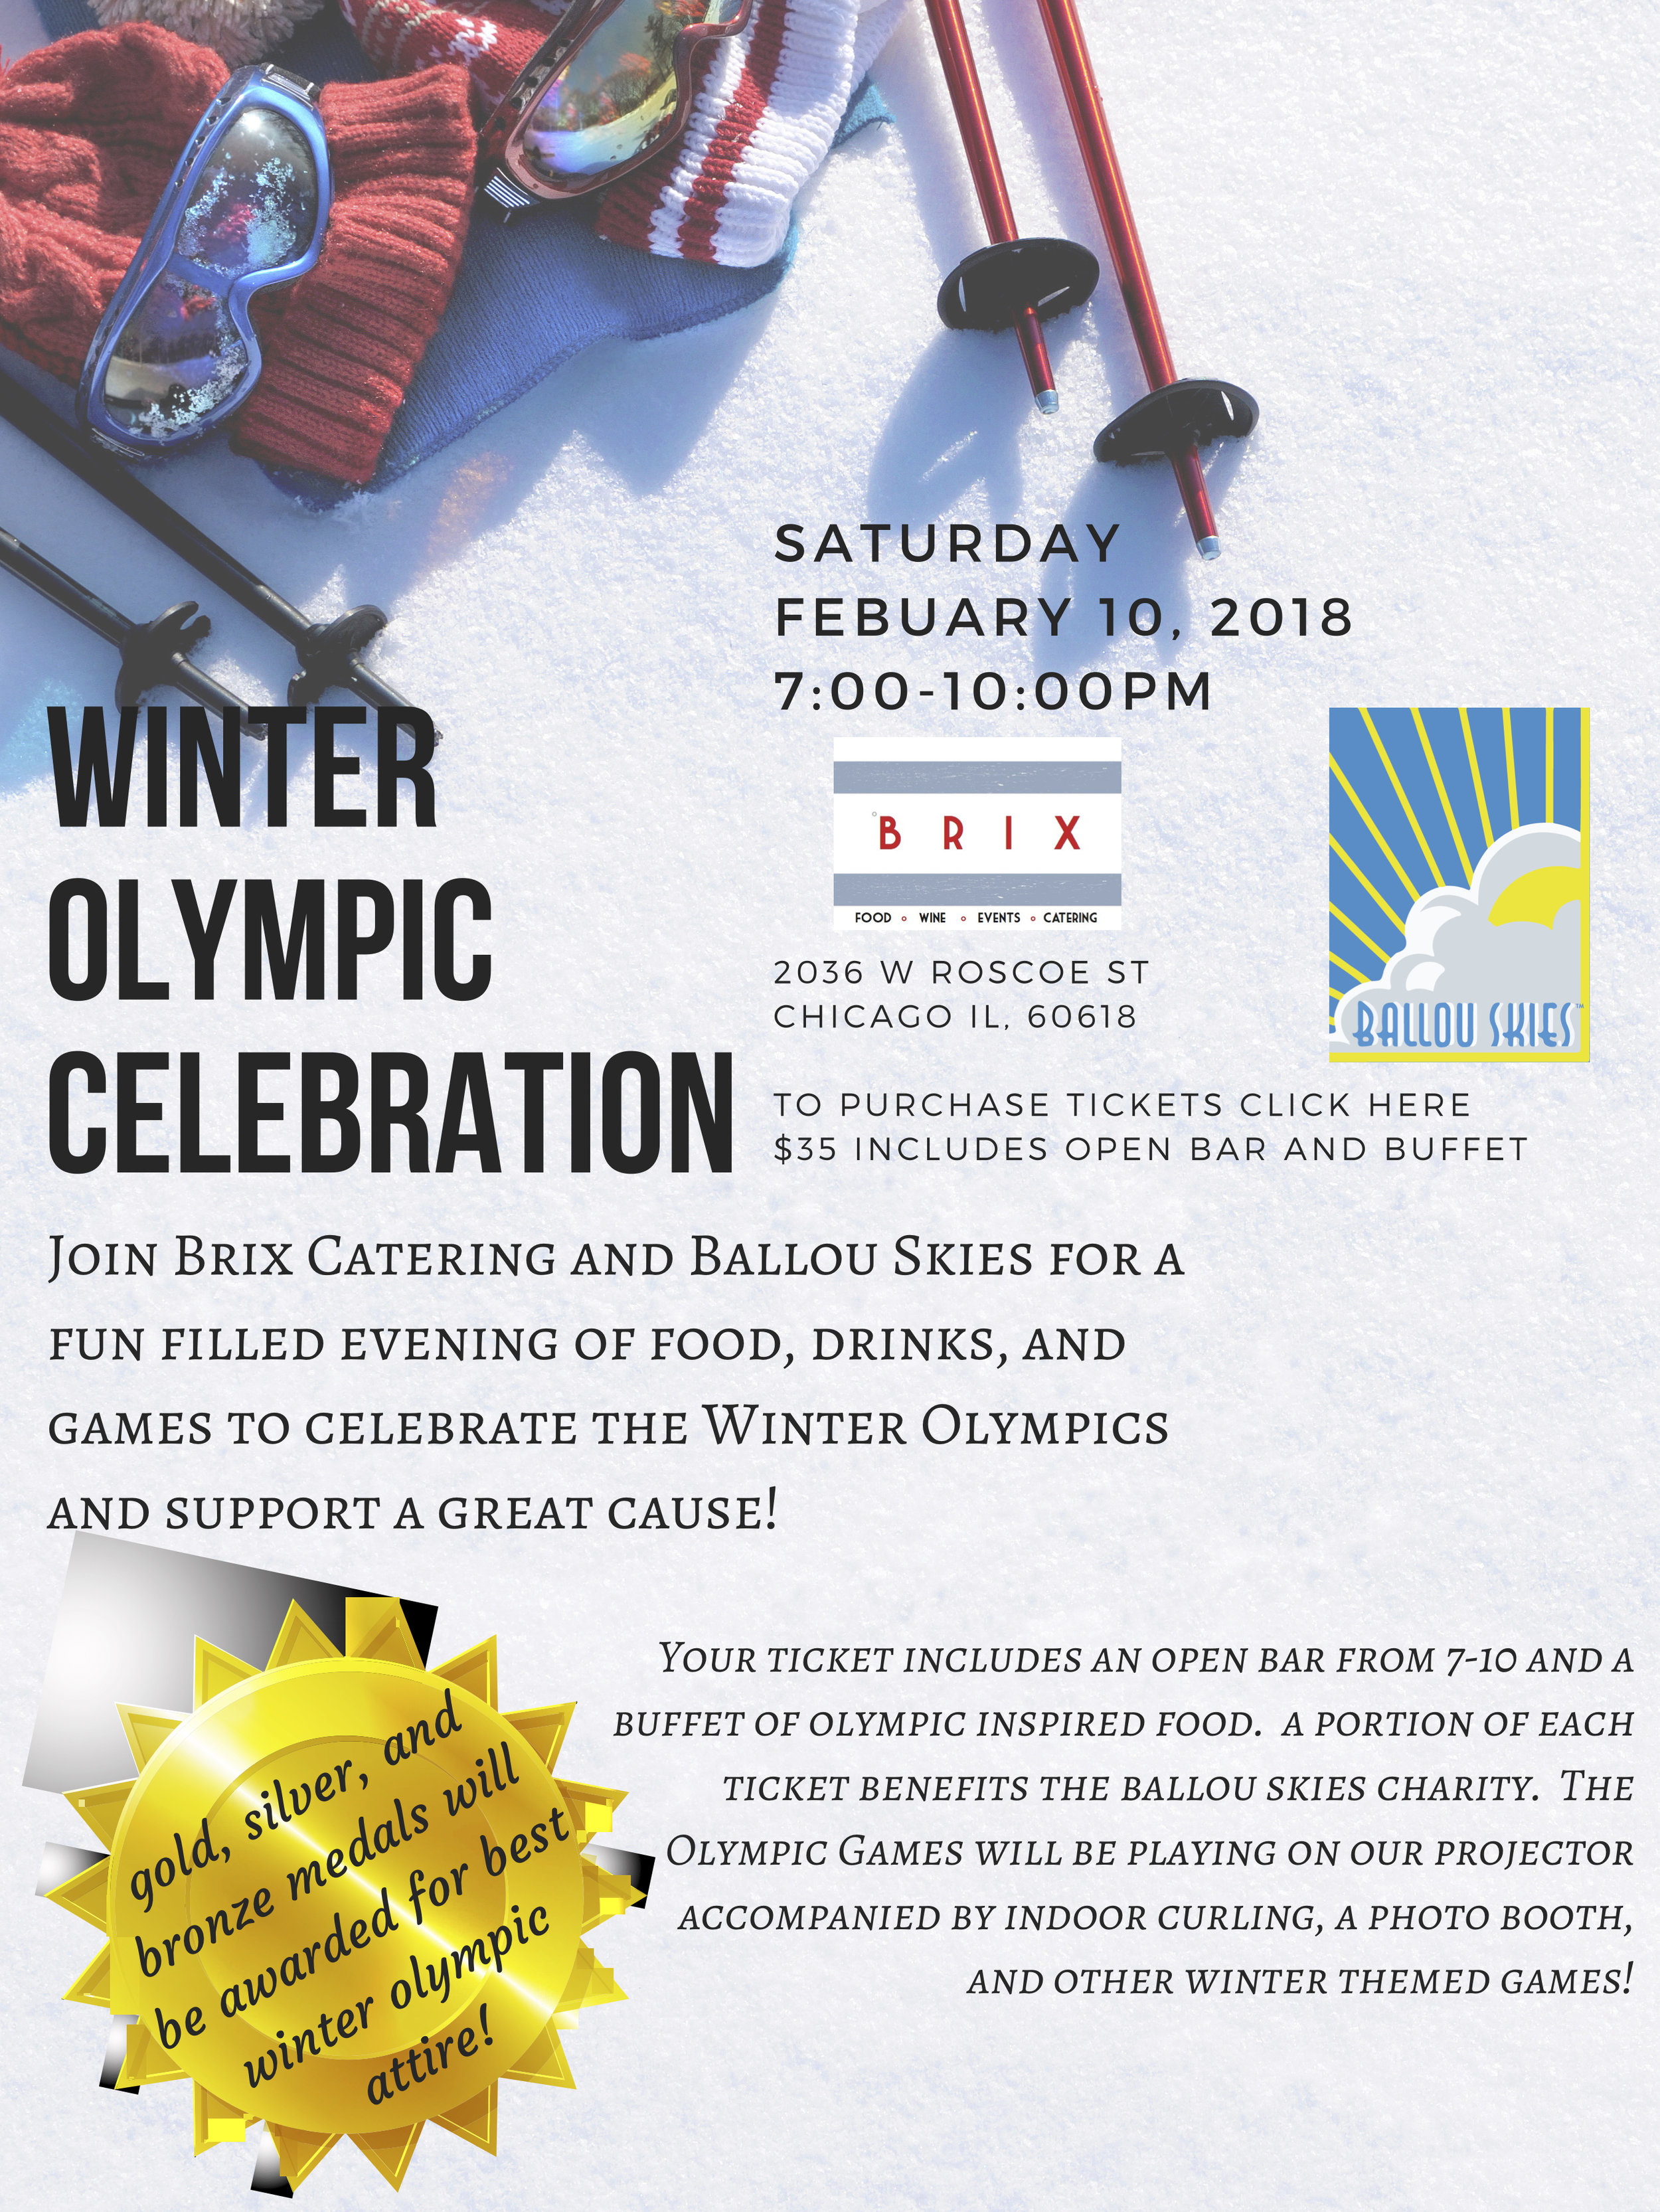 Winter Olympic celebration.jpg